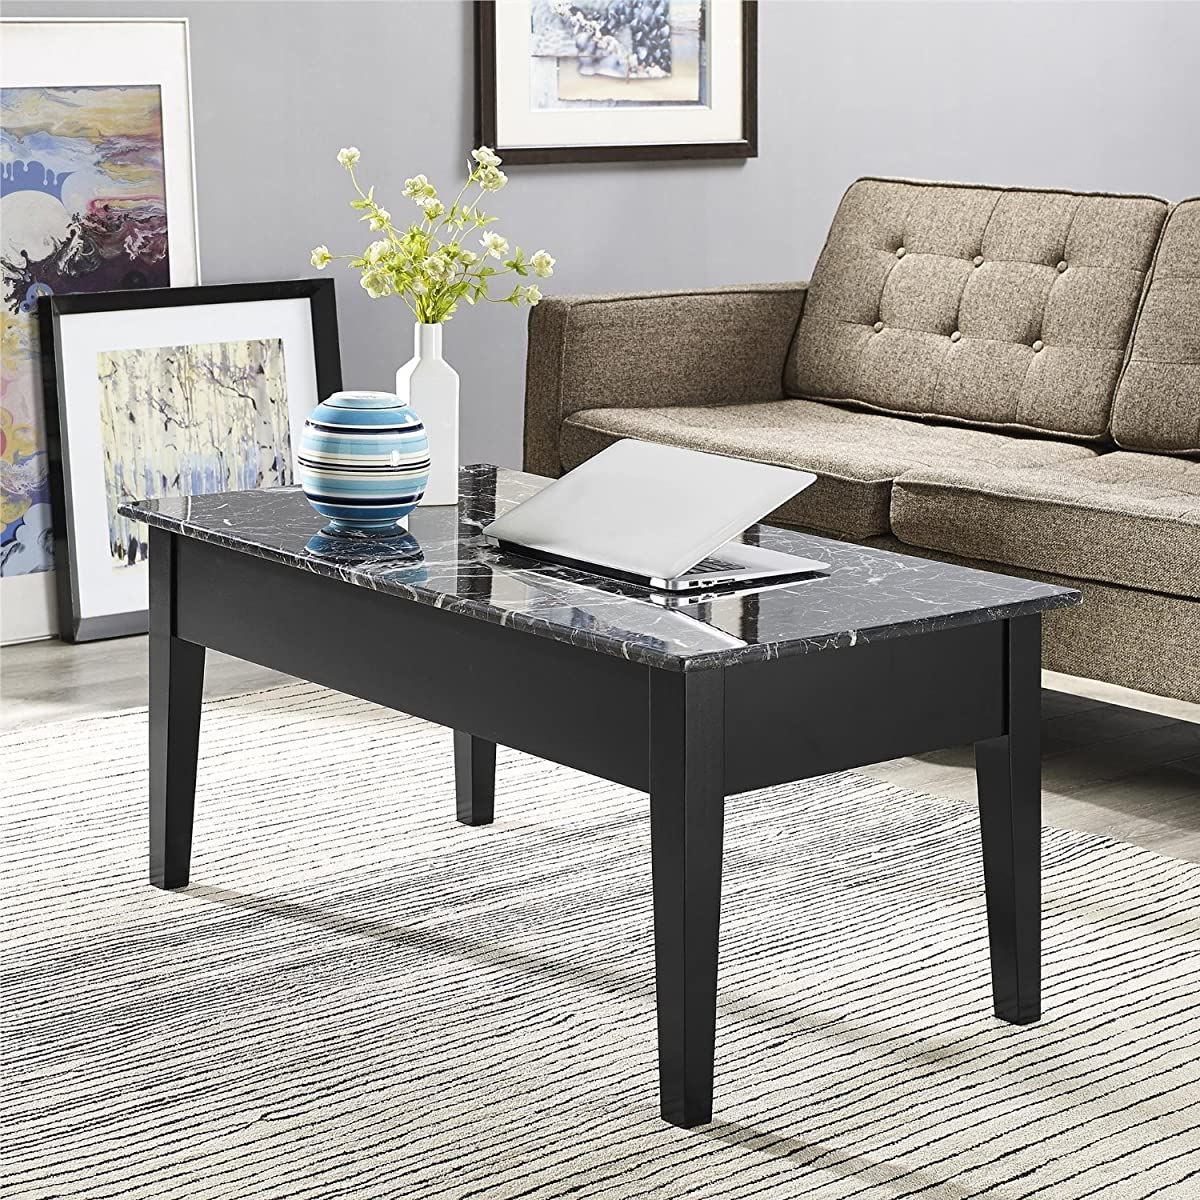 Dorel Living Faux Marble Lift Top Storage Coffee Table, Black